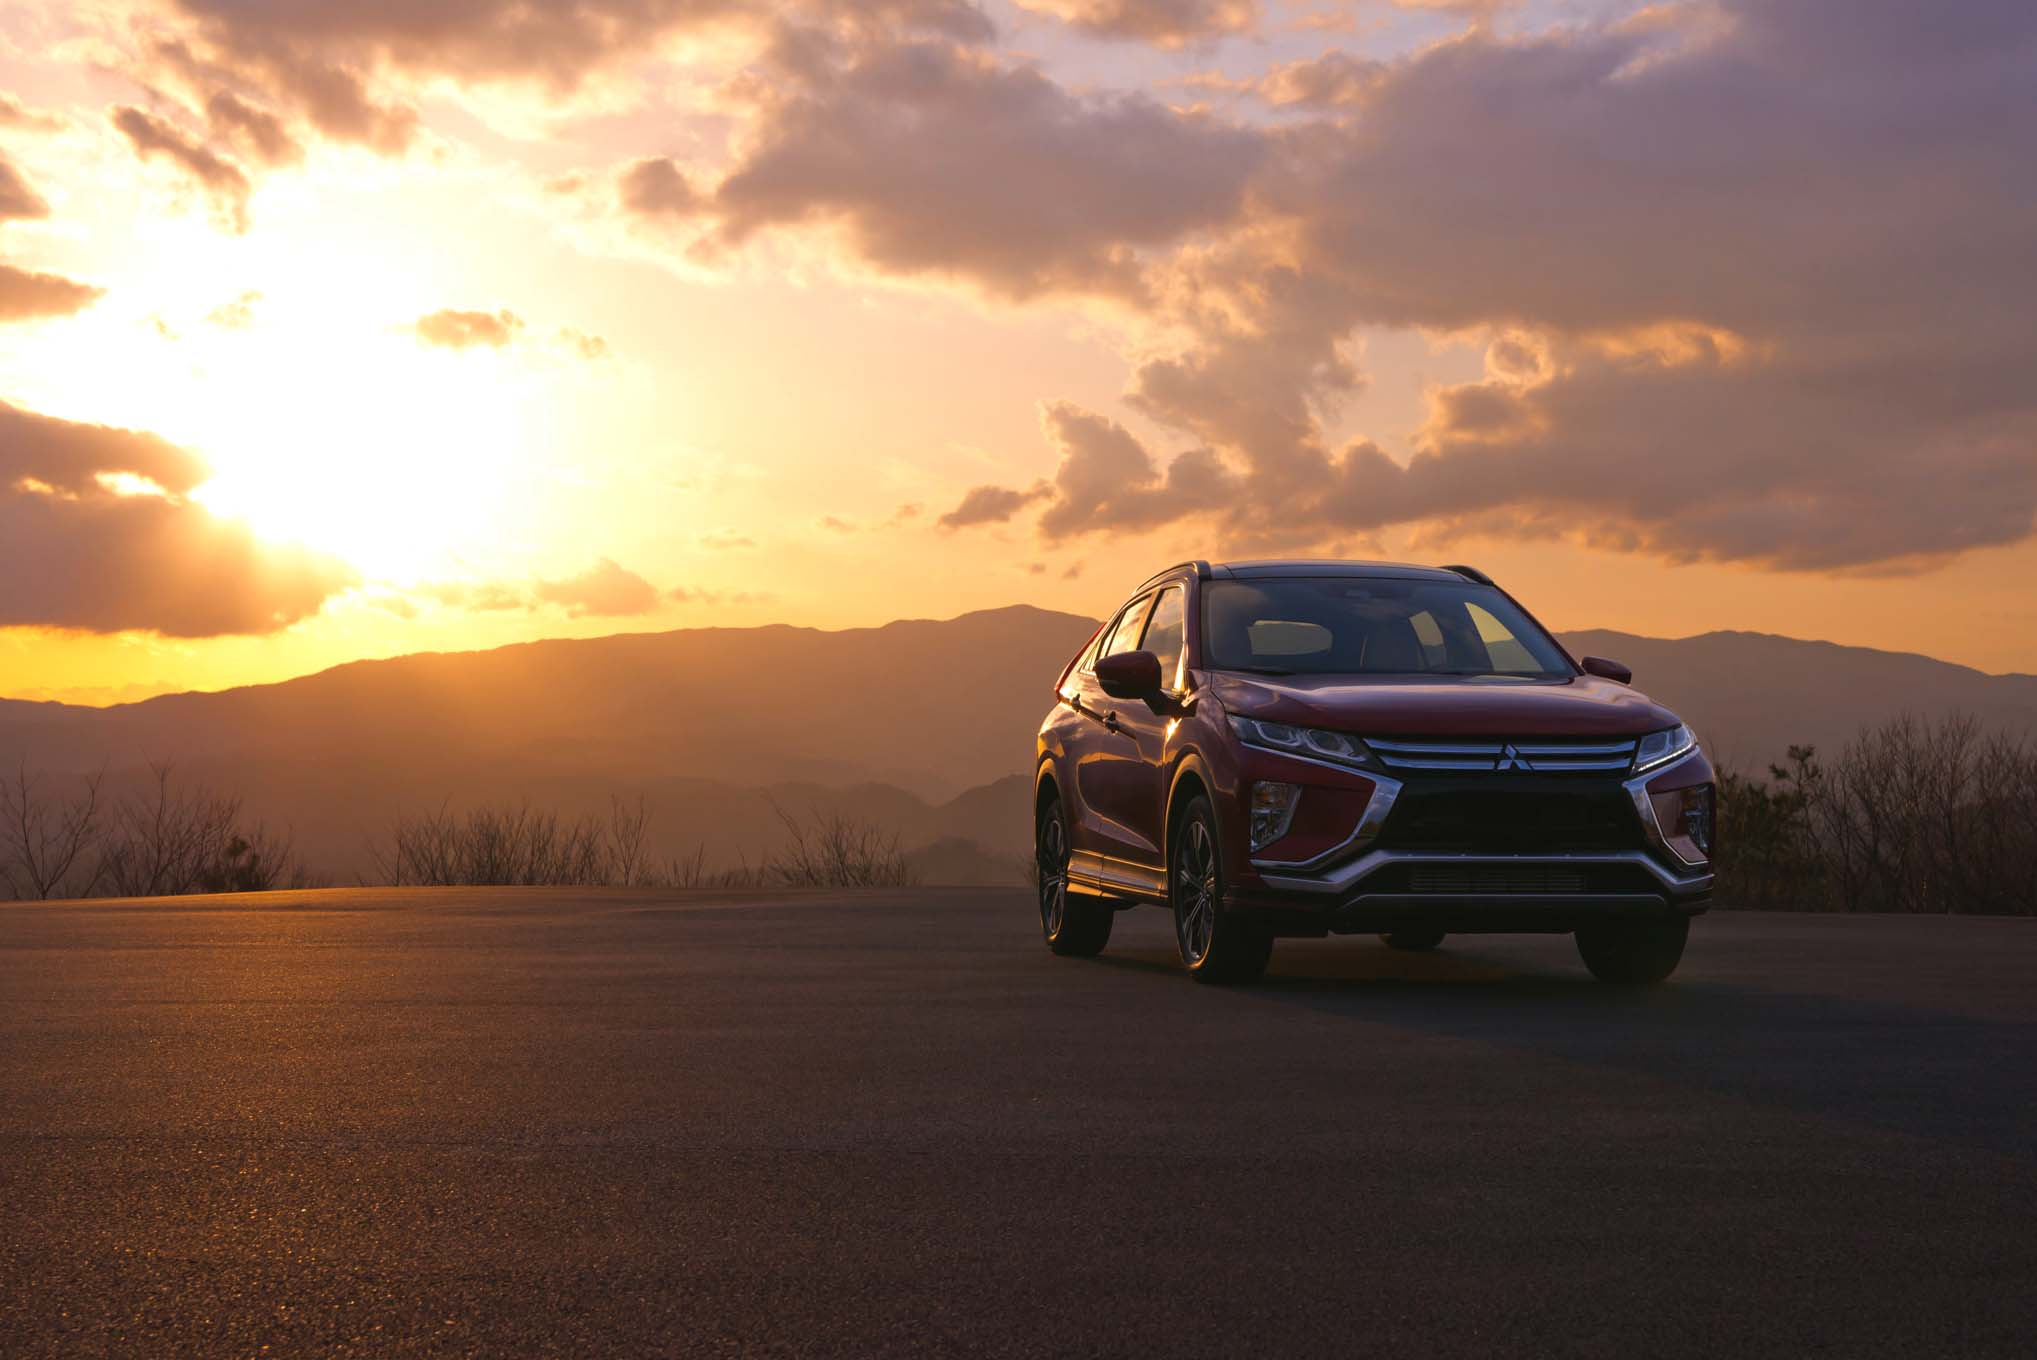 2018 Mitsubishi Eclipse Cross Front End 02 1